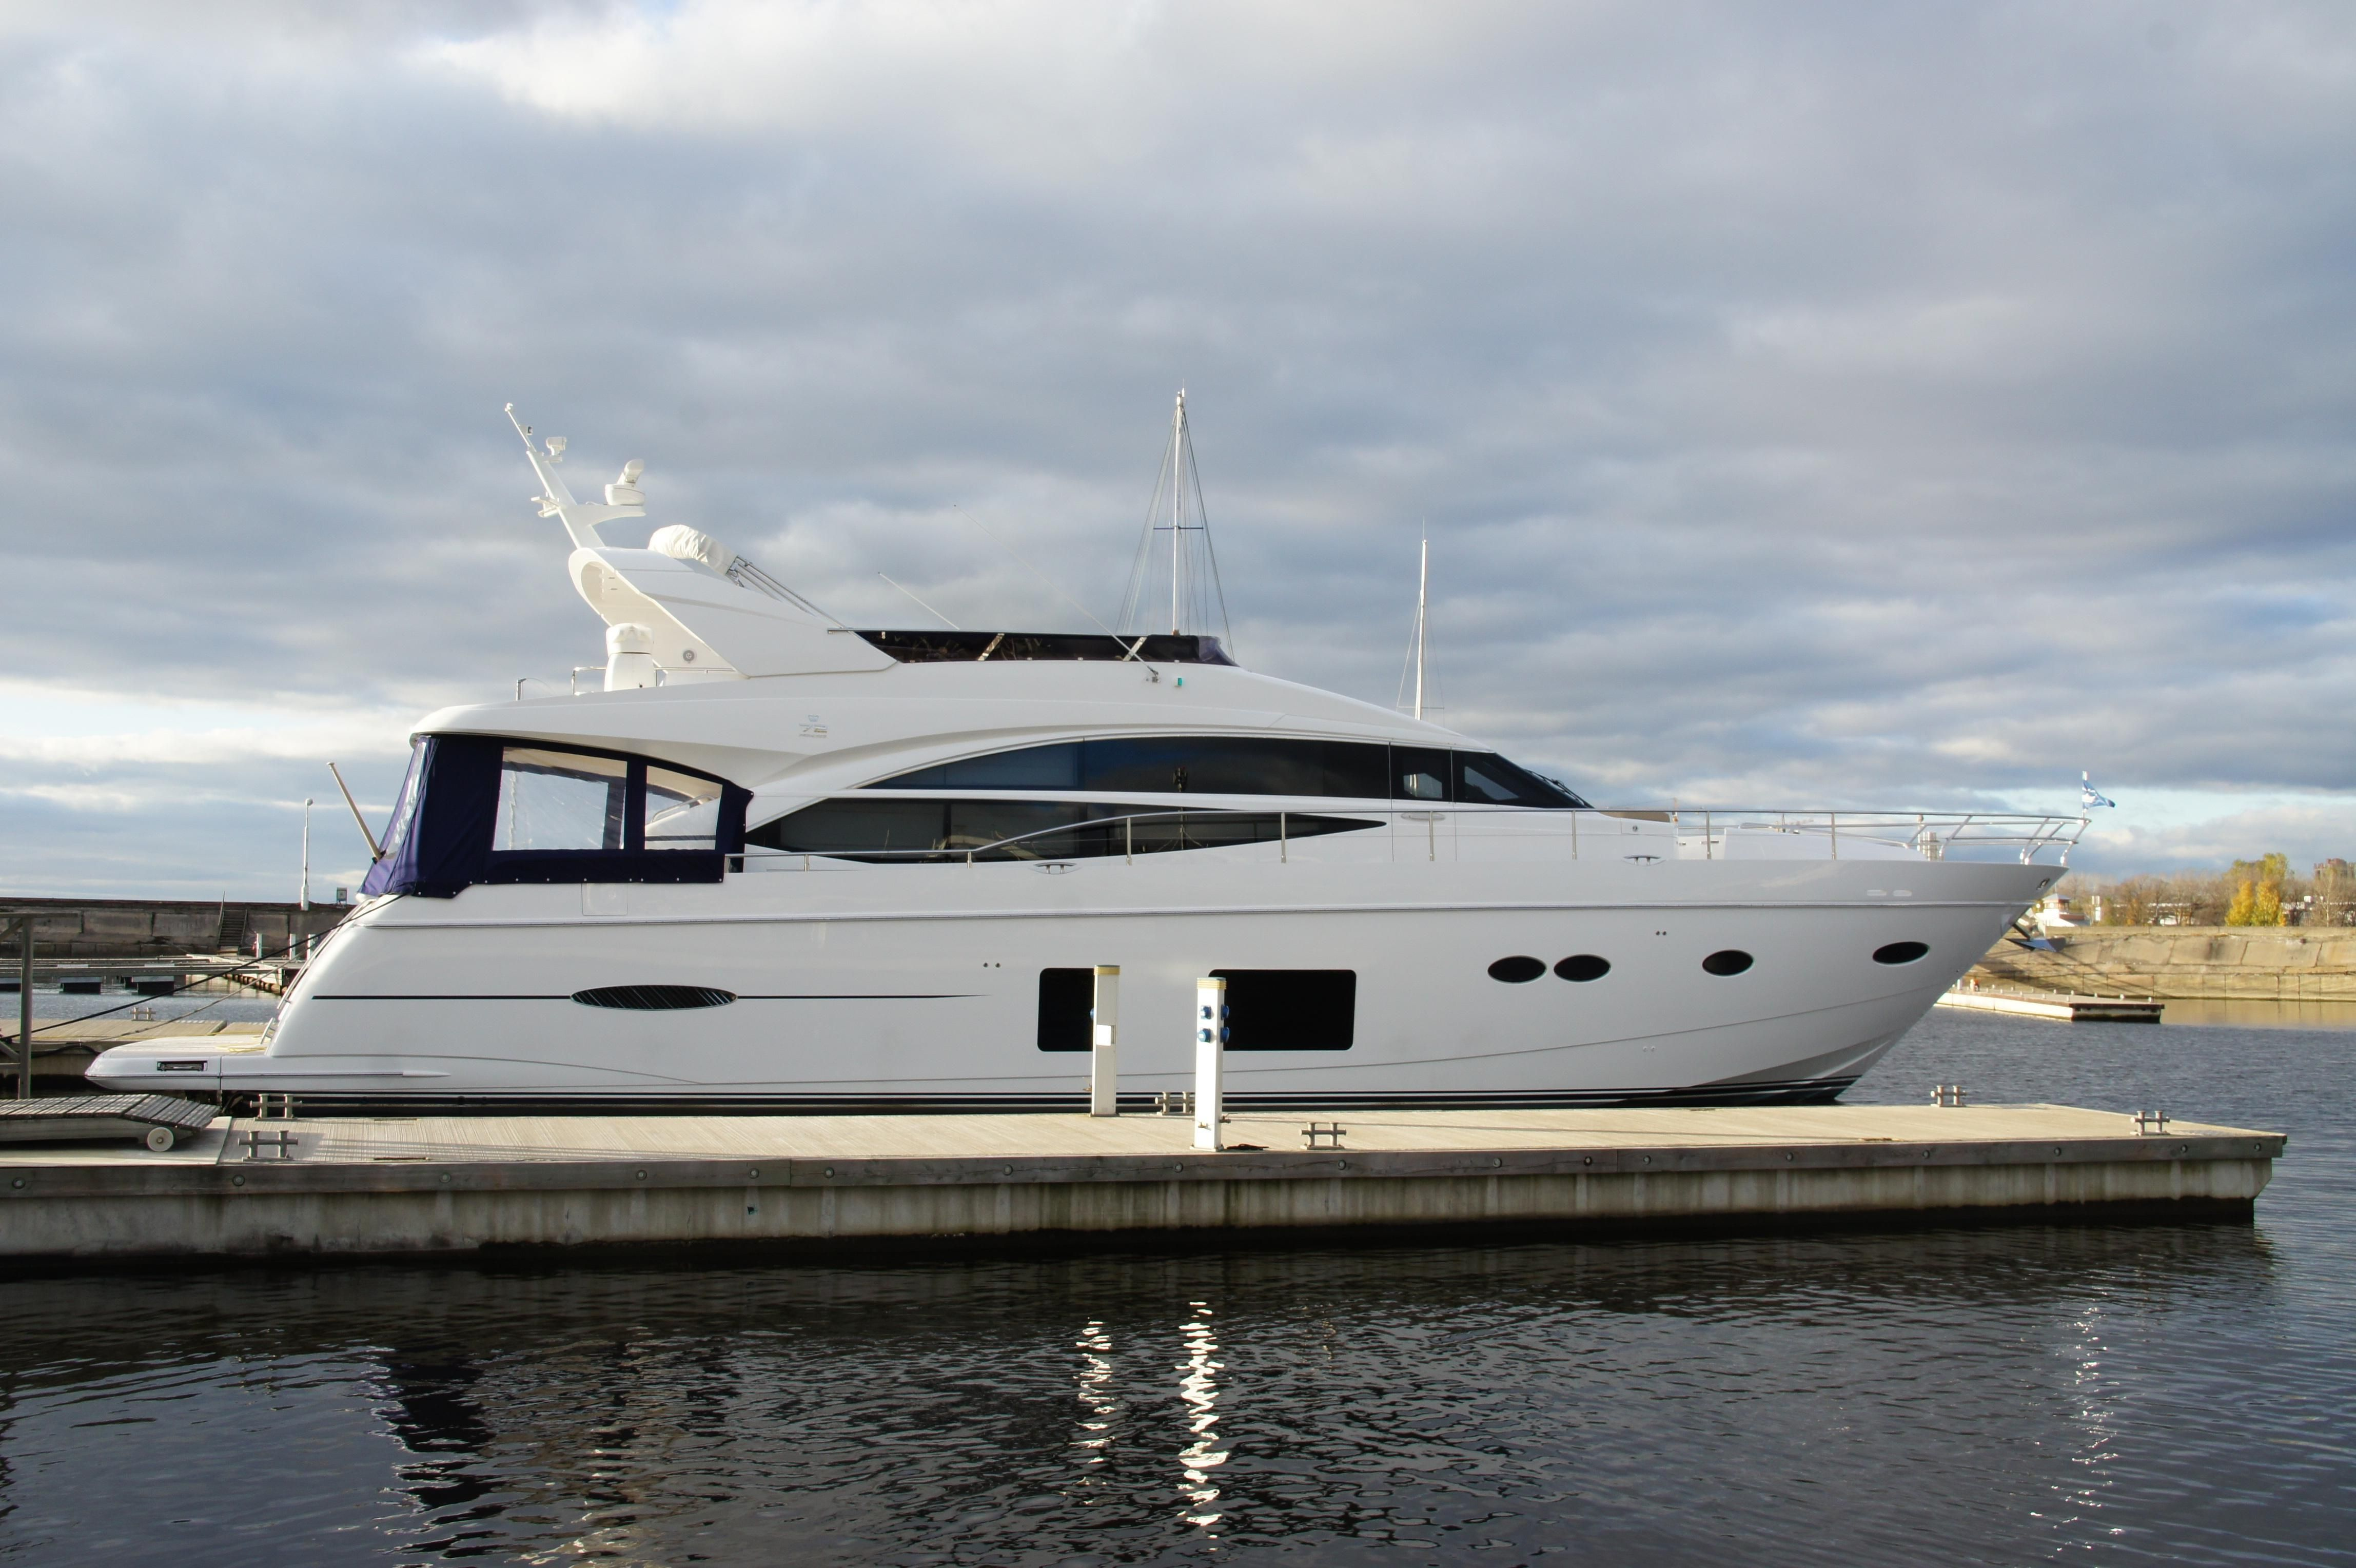 2013 princess 72 motor yacht power boat for sale www for Large motor yachts for sale